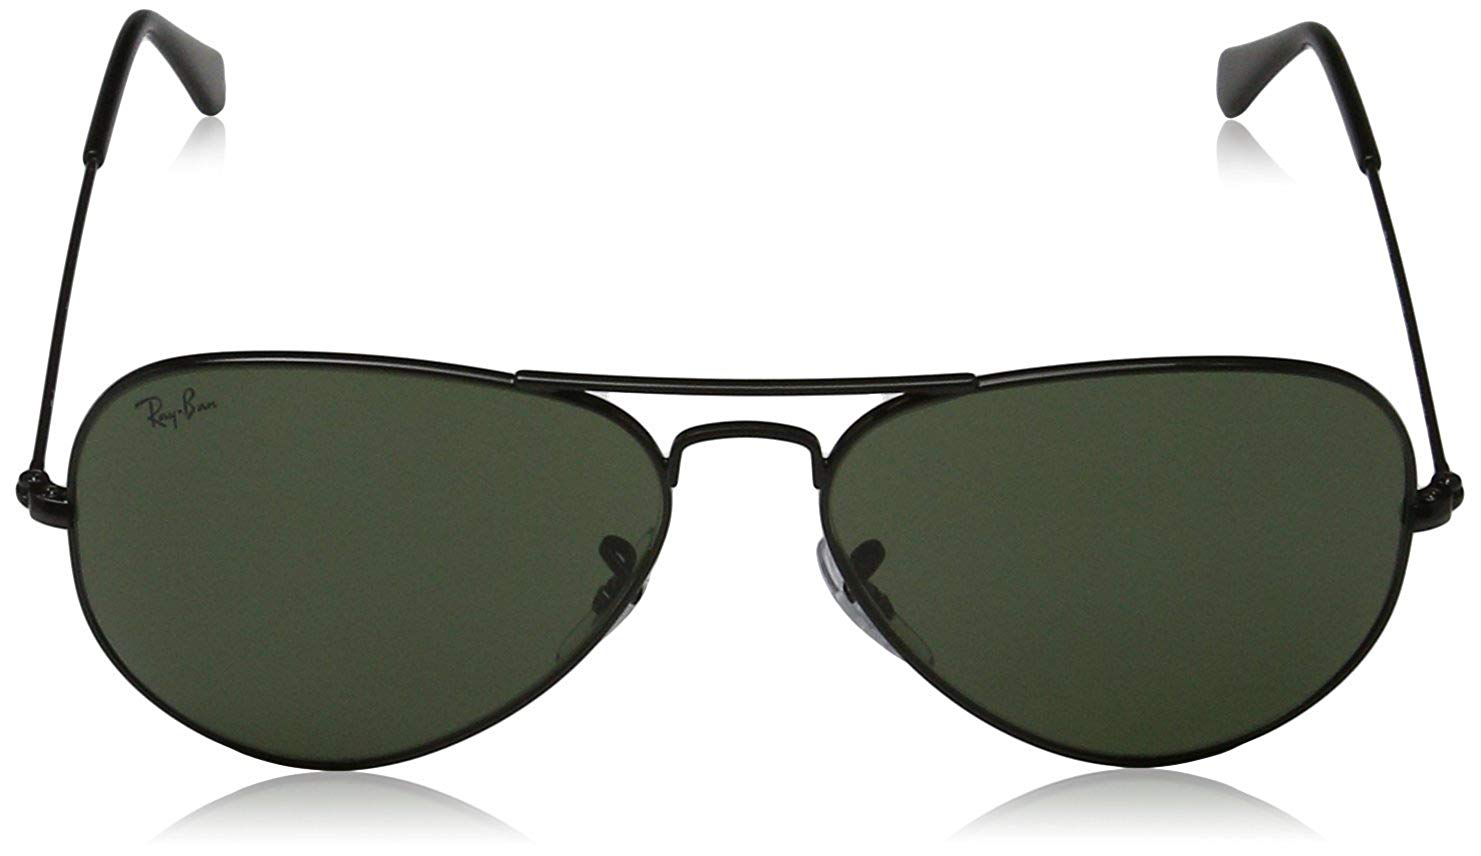 Ray-Ban RB3025 Aviator Large Metal Eyeglass Frames, Black (Black), 58 mm Mixed Adult